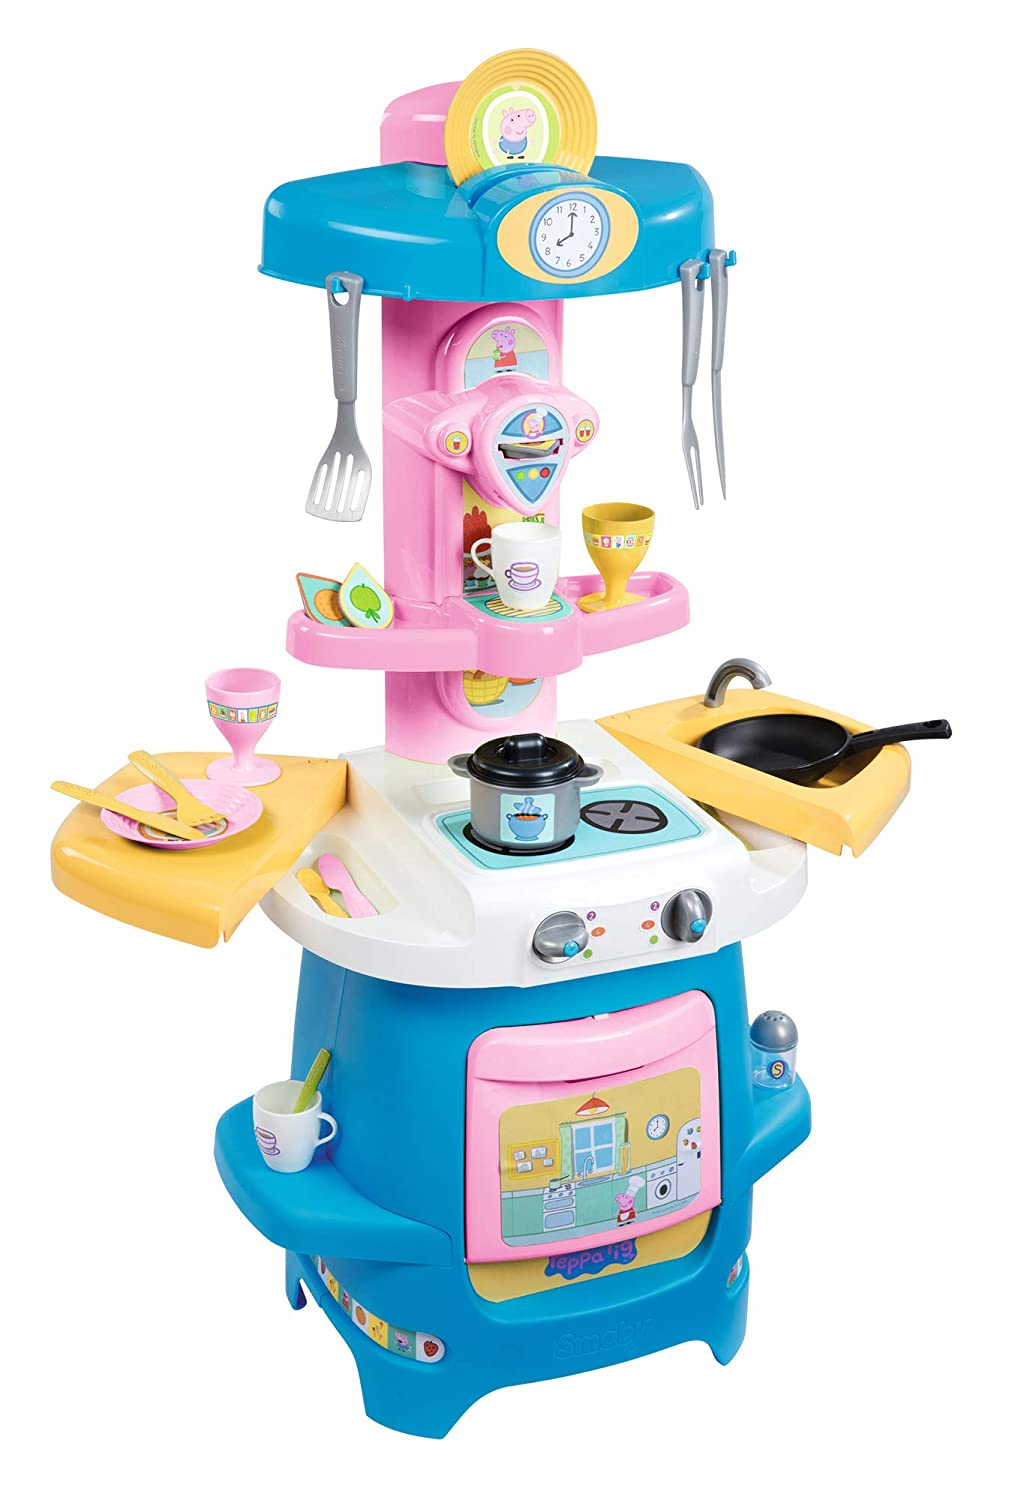 Buy Smoby Peppa Cooky Küche Online at Low Prices in India - Amazon.in